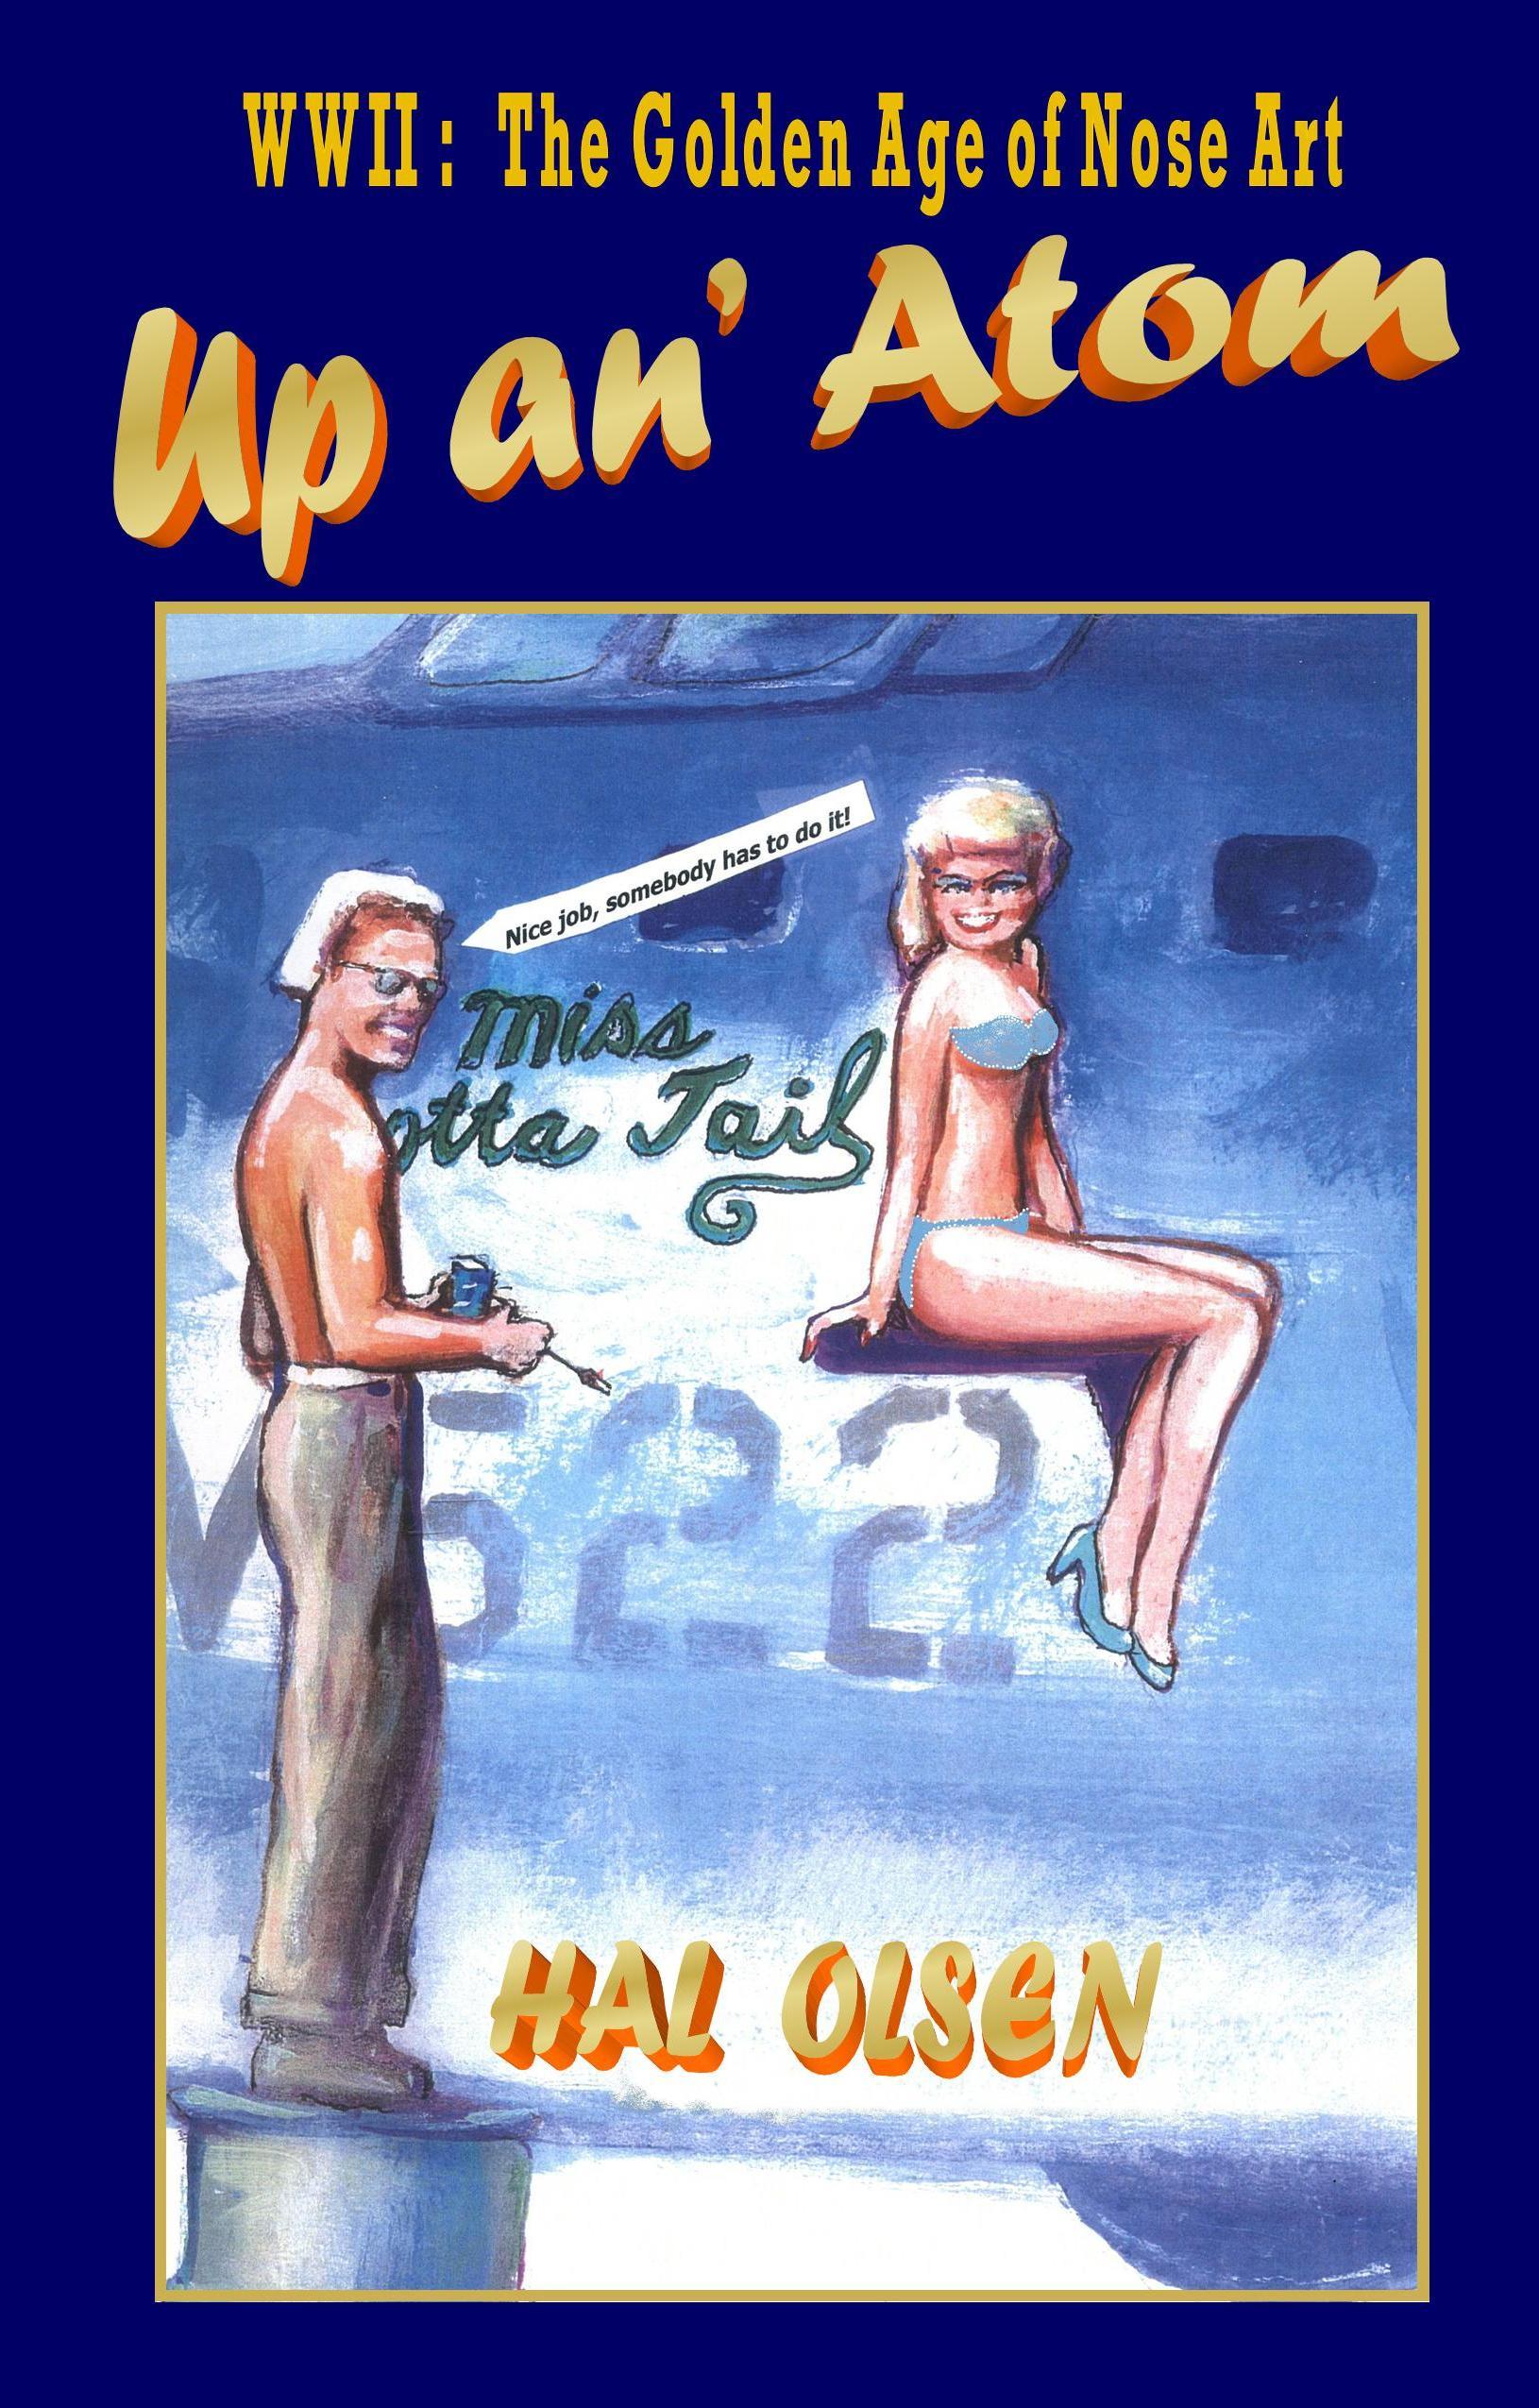 Up an' Atom by Hal Olsen - WW II The Golden Age of Nose Art